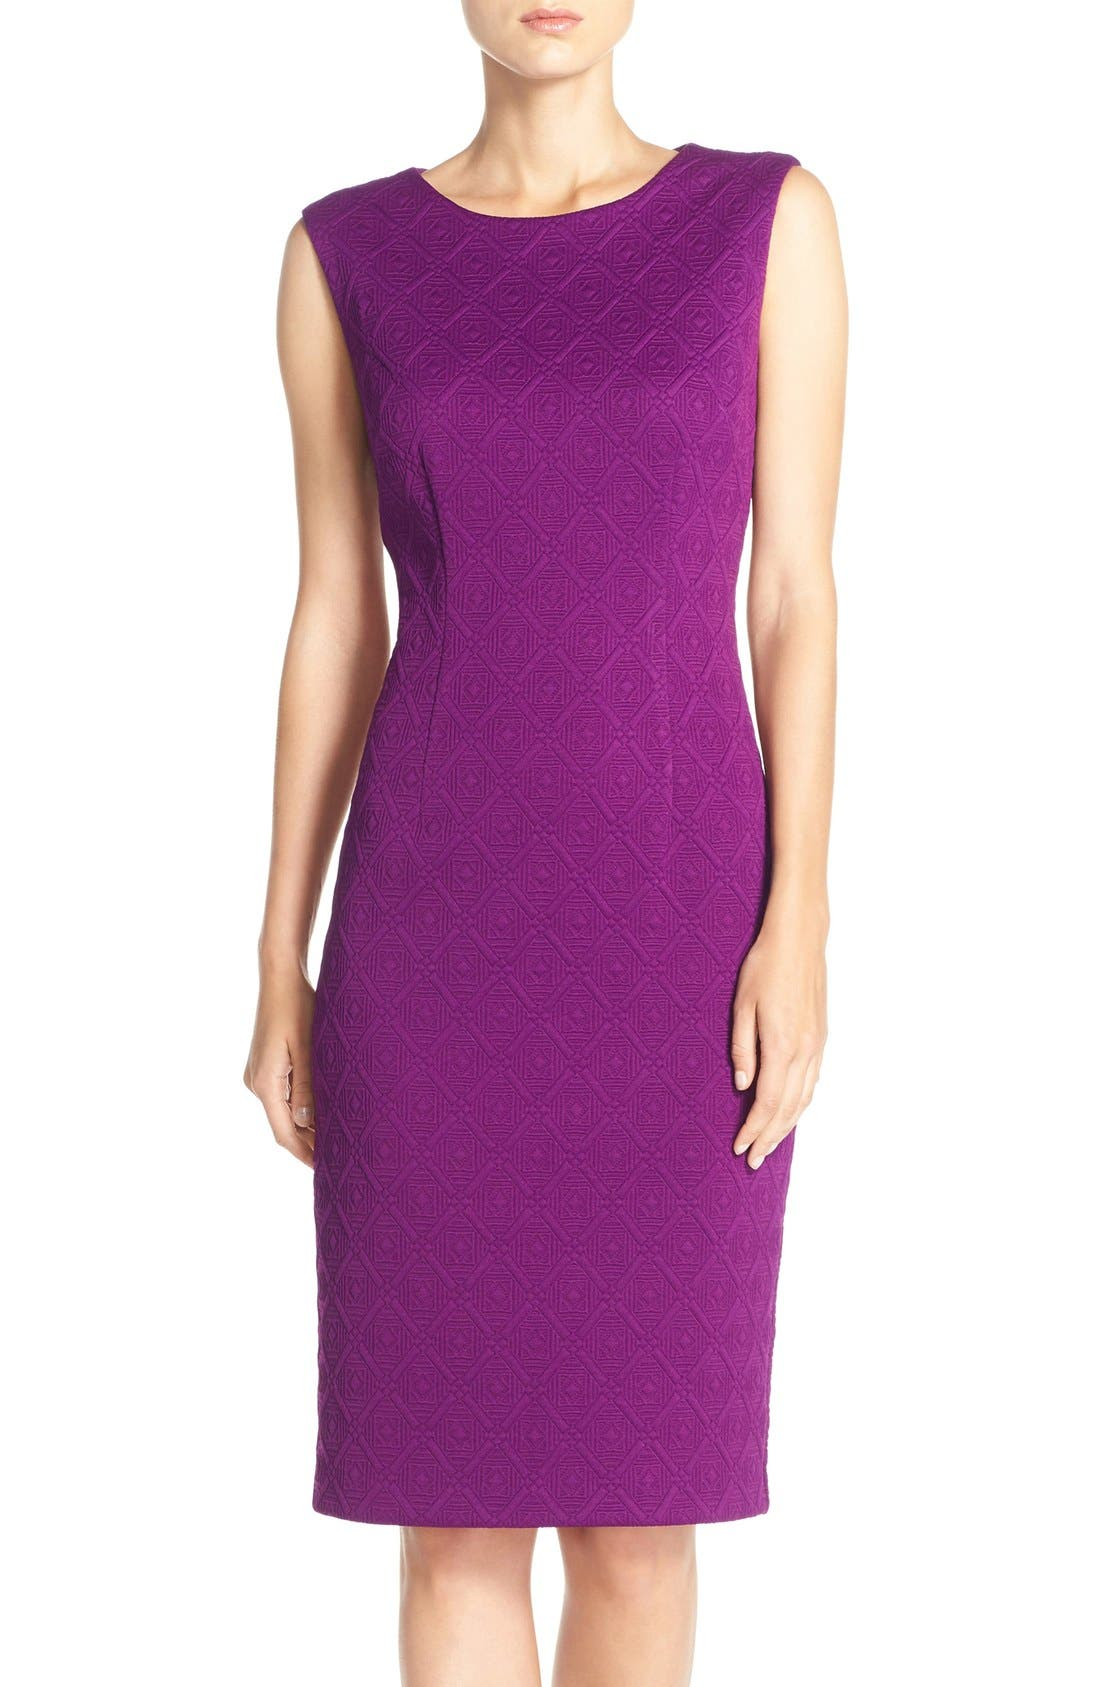 Main Image - Betsey Johnson Textured Knit Sheath Dress